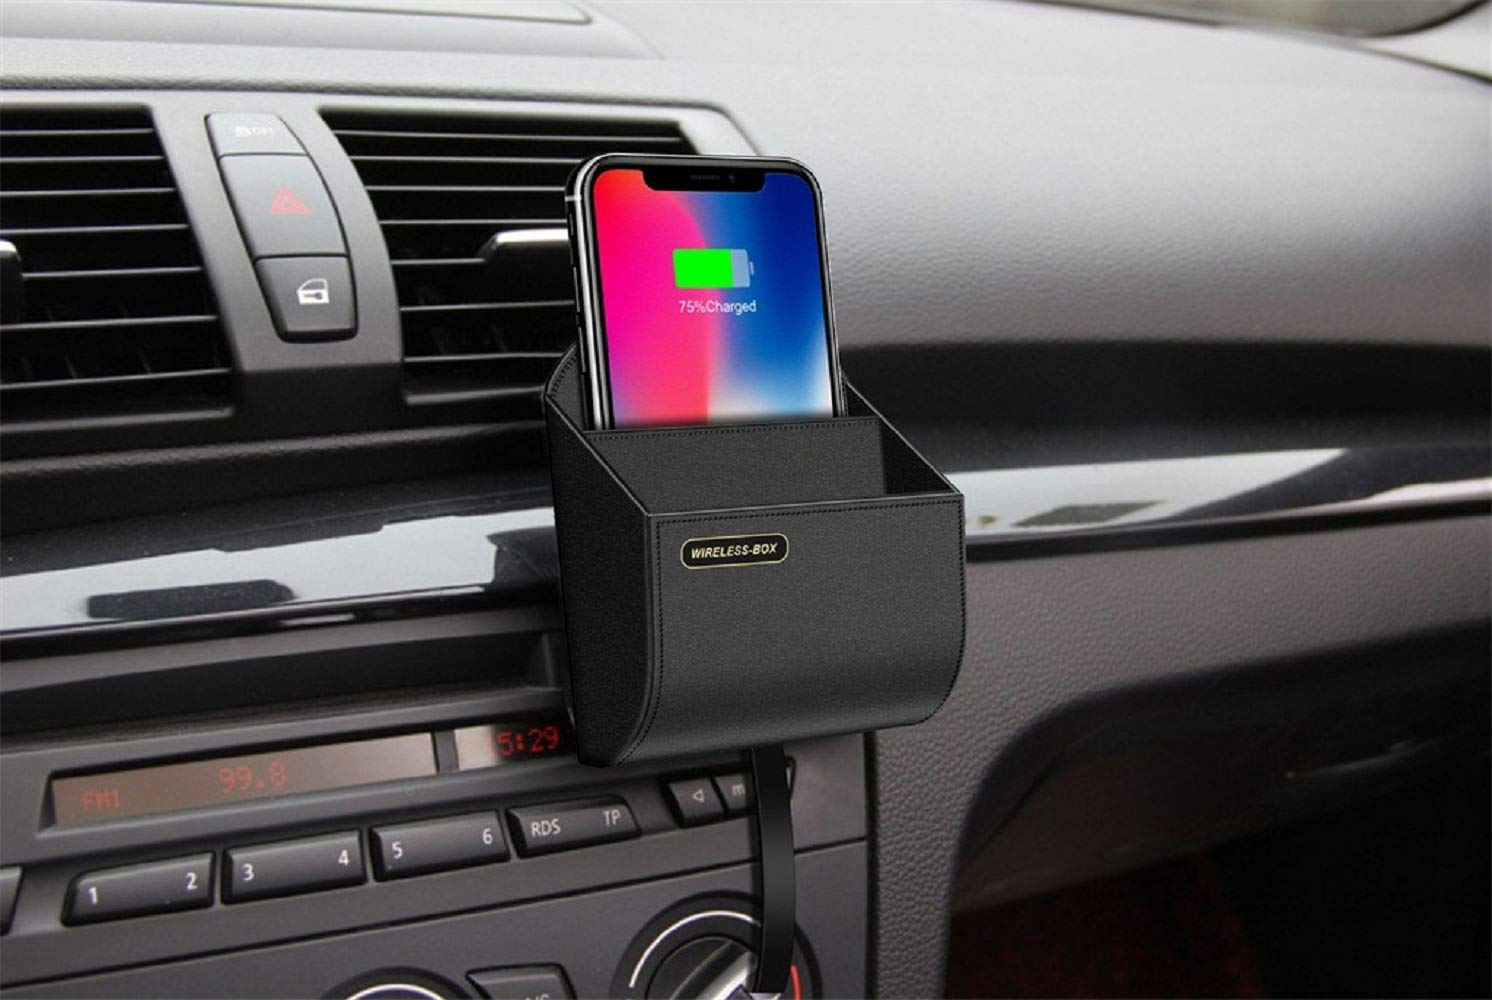 Pollyhb Wireless Charger Storage Box Car Charging Dock Station,Compatible for iPhone,Compatible Samsung by Pollyhb's Wireless Charger (Image #1)